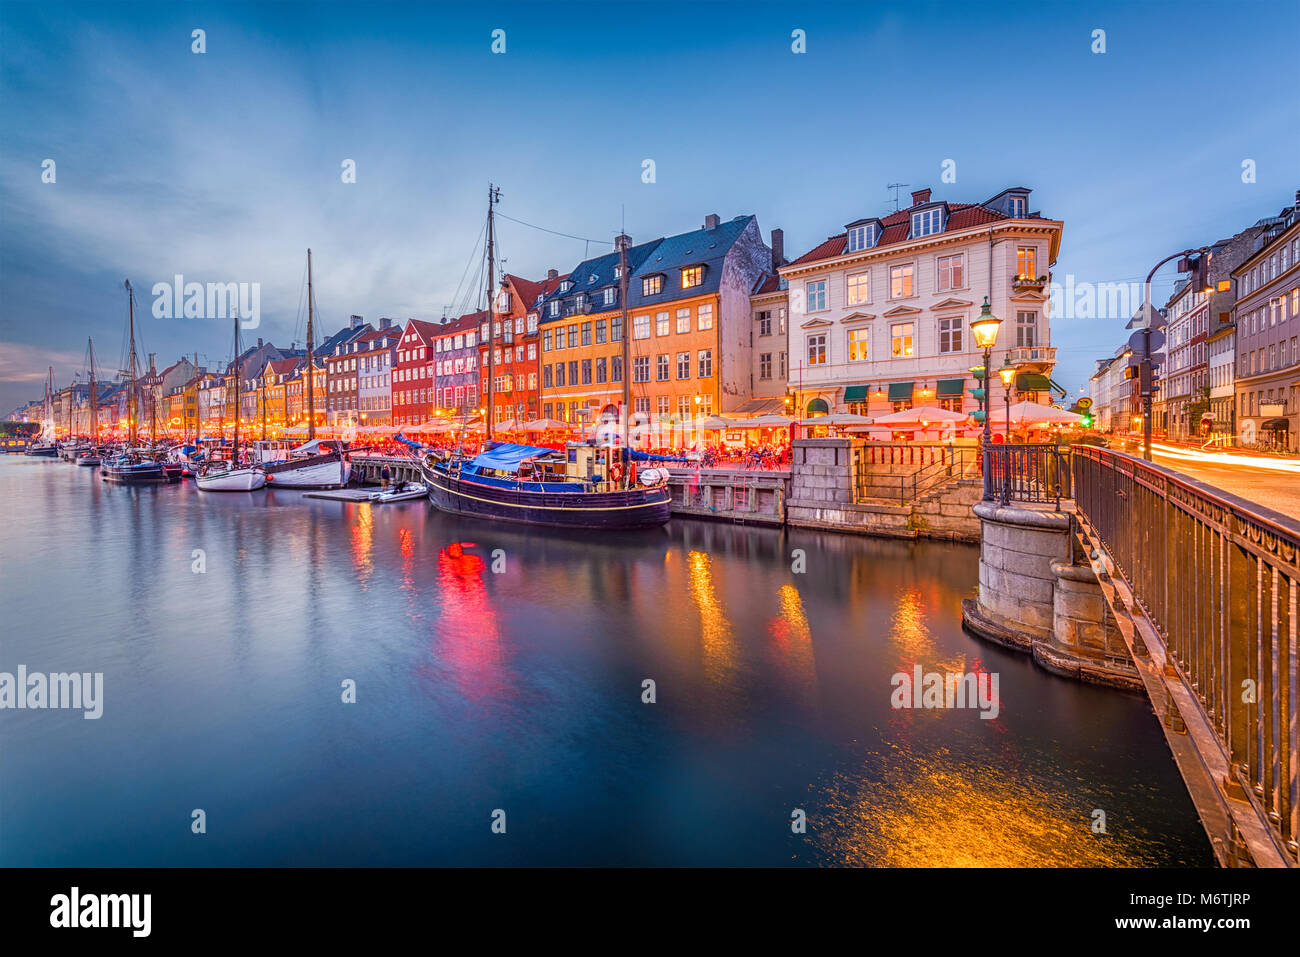 Copenhagen, Denmark skyline on the Nyhavn Canal at twilight. - Stock Image